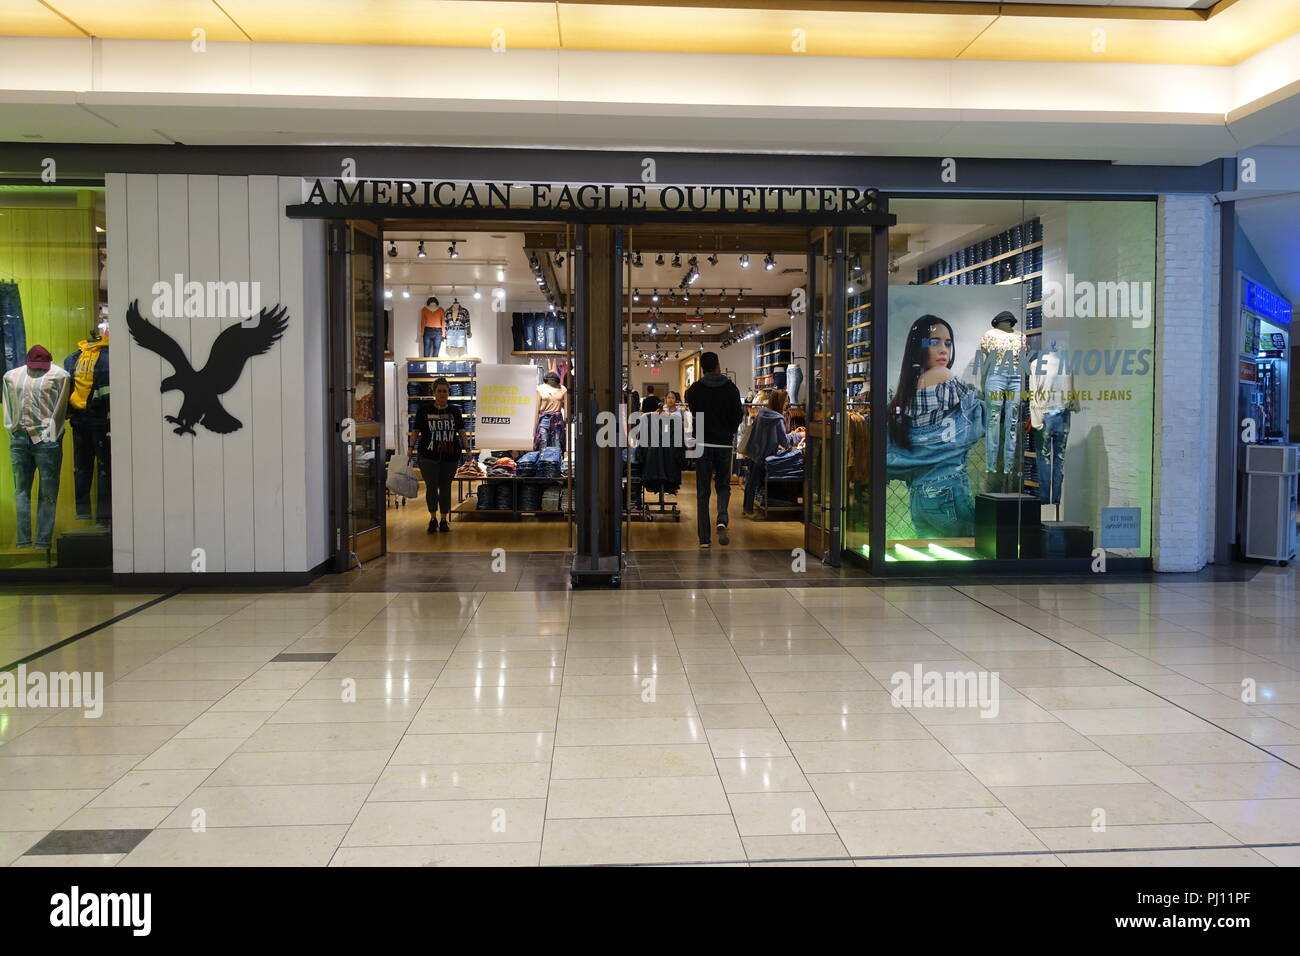 August 31 2018 American Eagle Outfitters Store Inside The Mall In Downtown Vancouver BC Canada